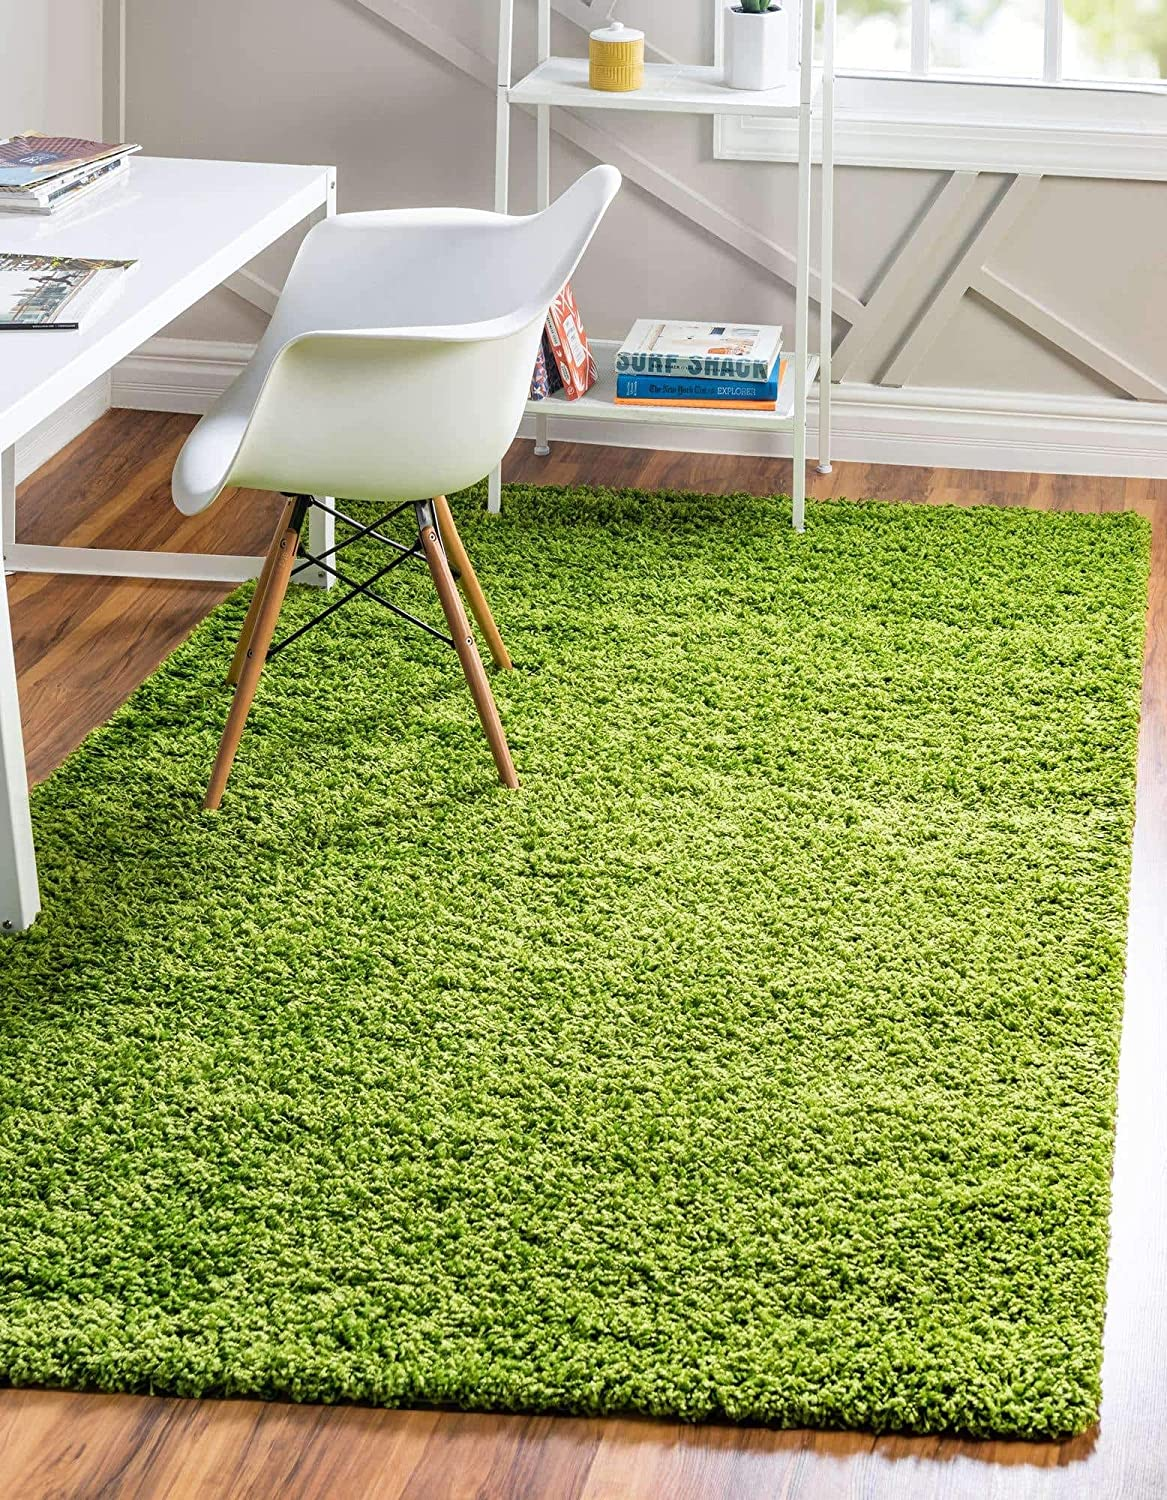 Unique Loom Solo Solid Shag Collection Modern Plush Grass Green Area Rug (2' 2 x 3' 0)